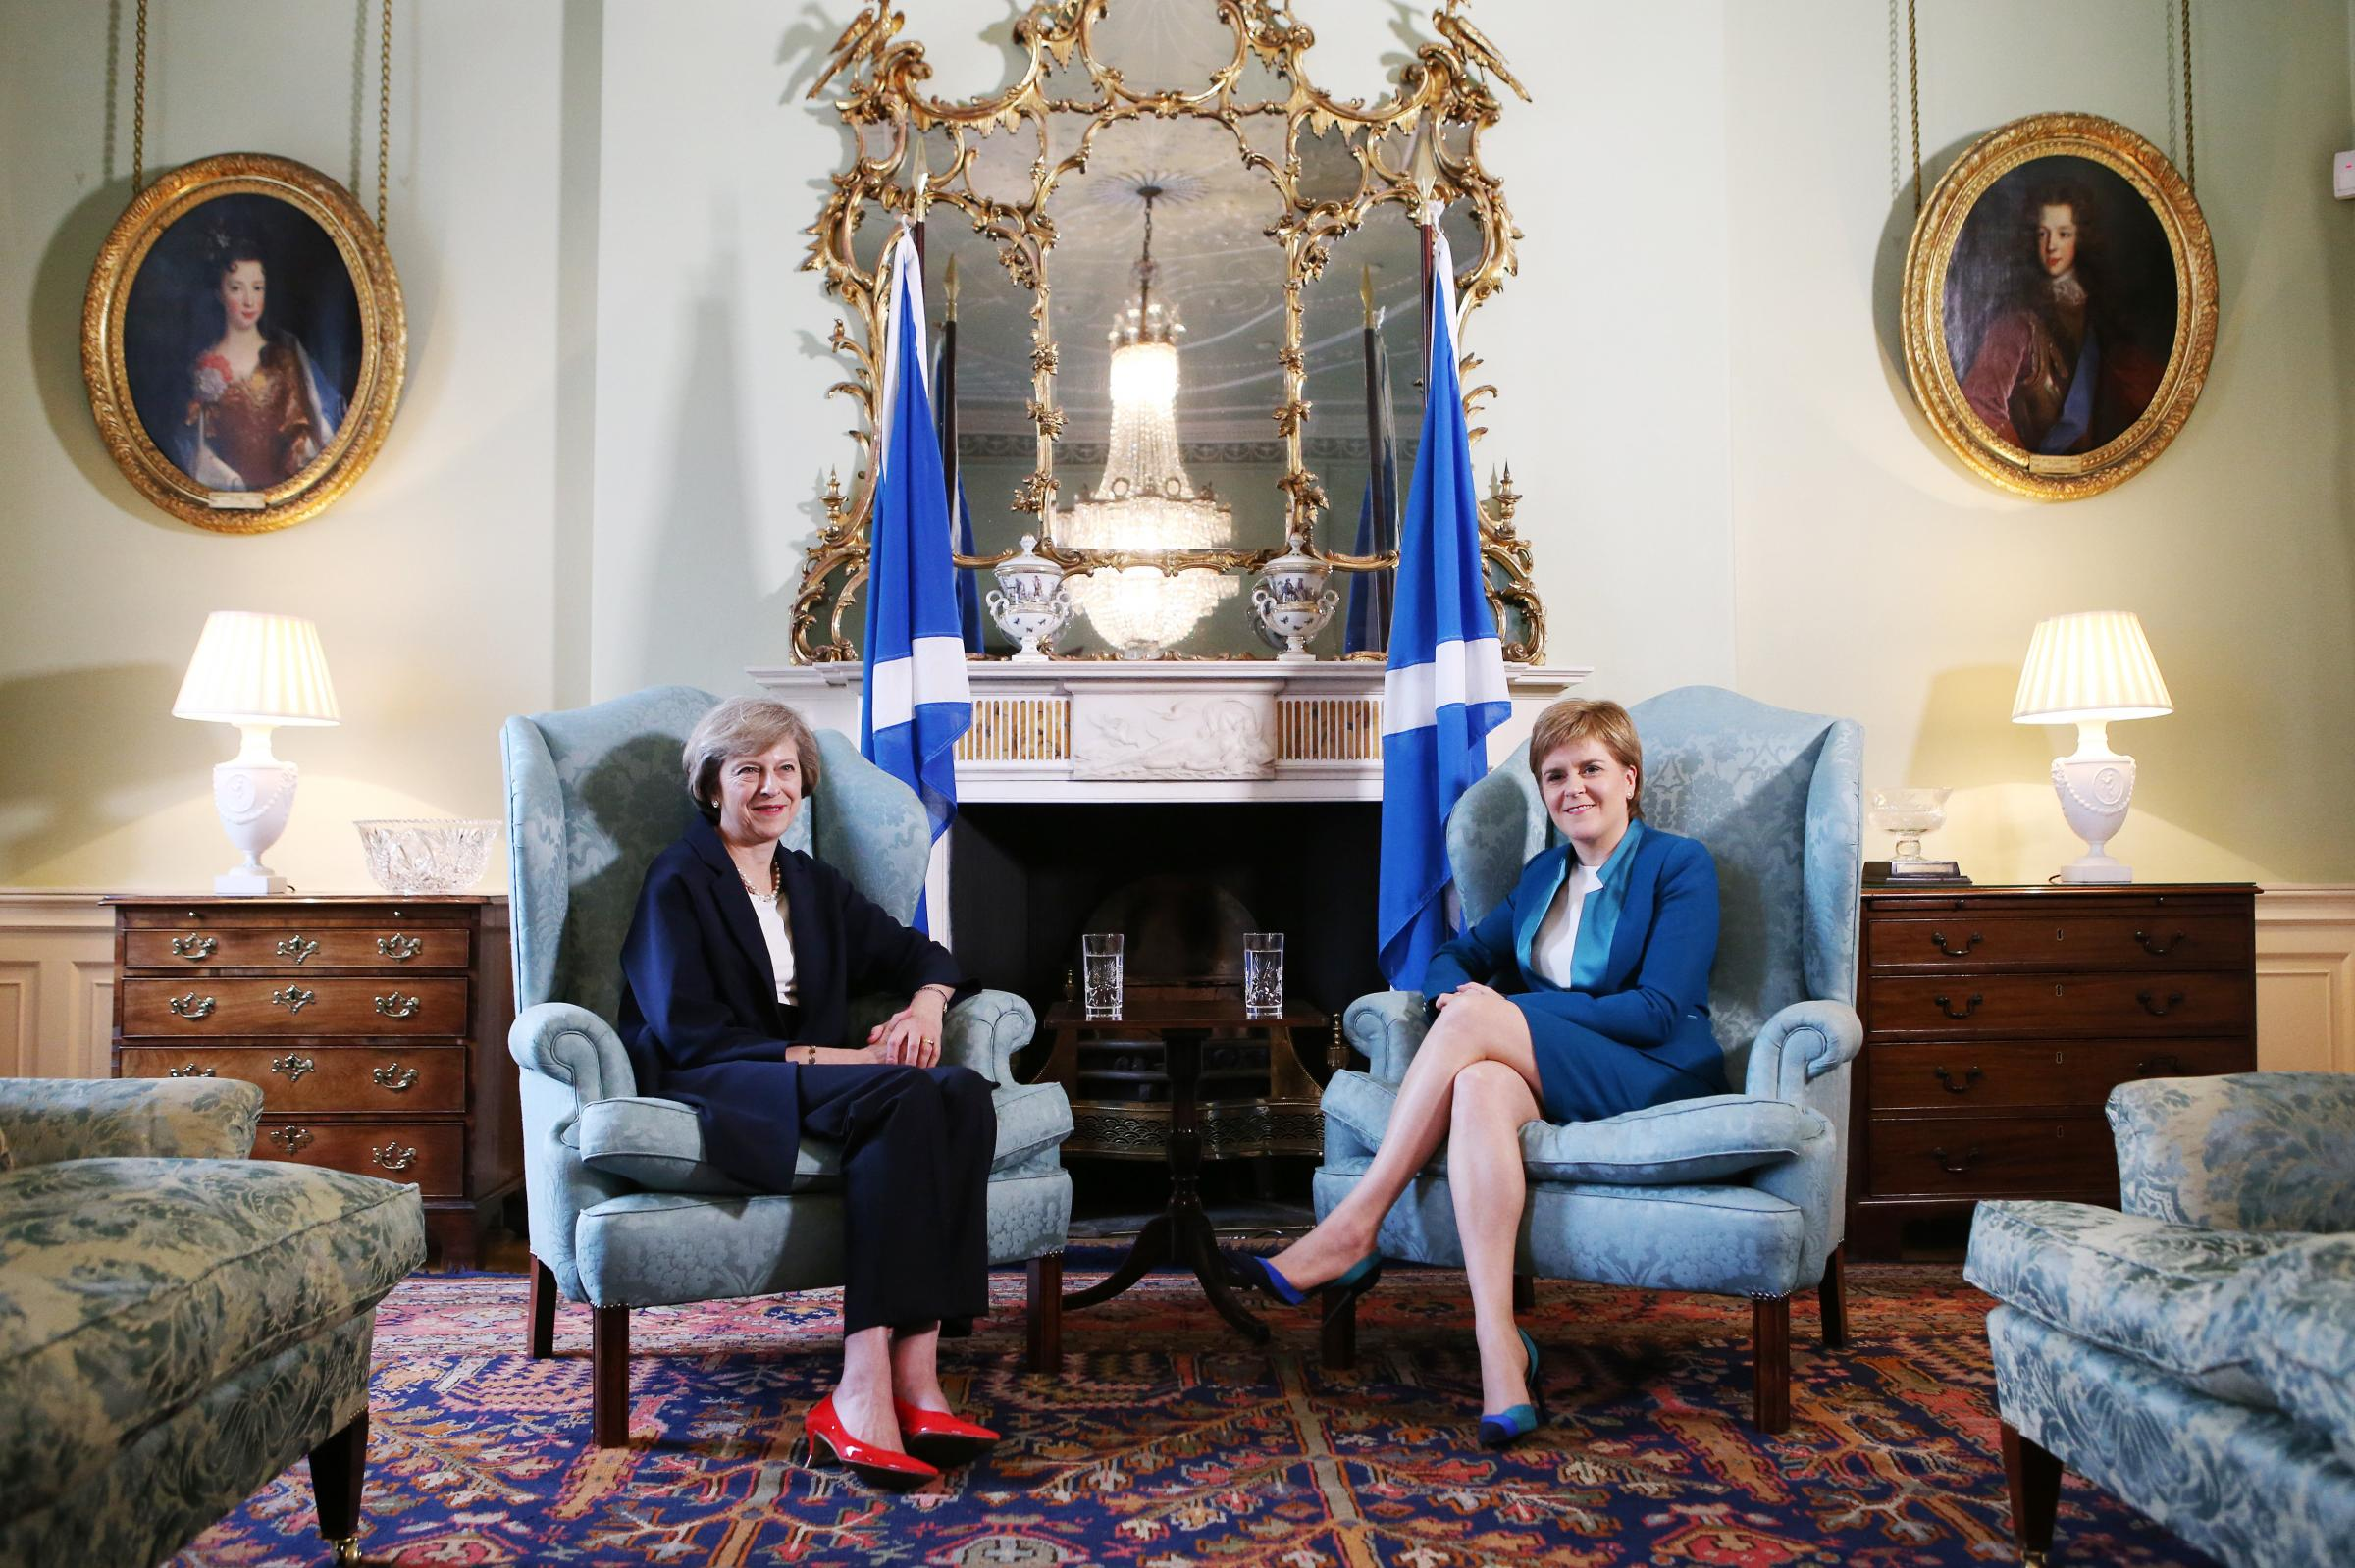 Nicola Sturgeon ups pressure over Brexit negotiations